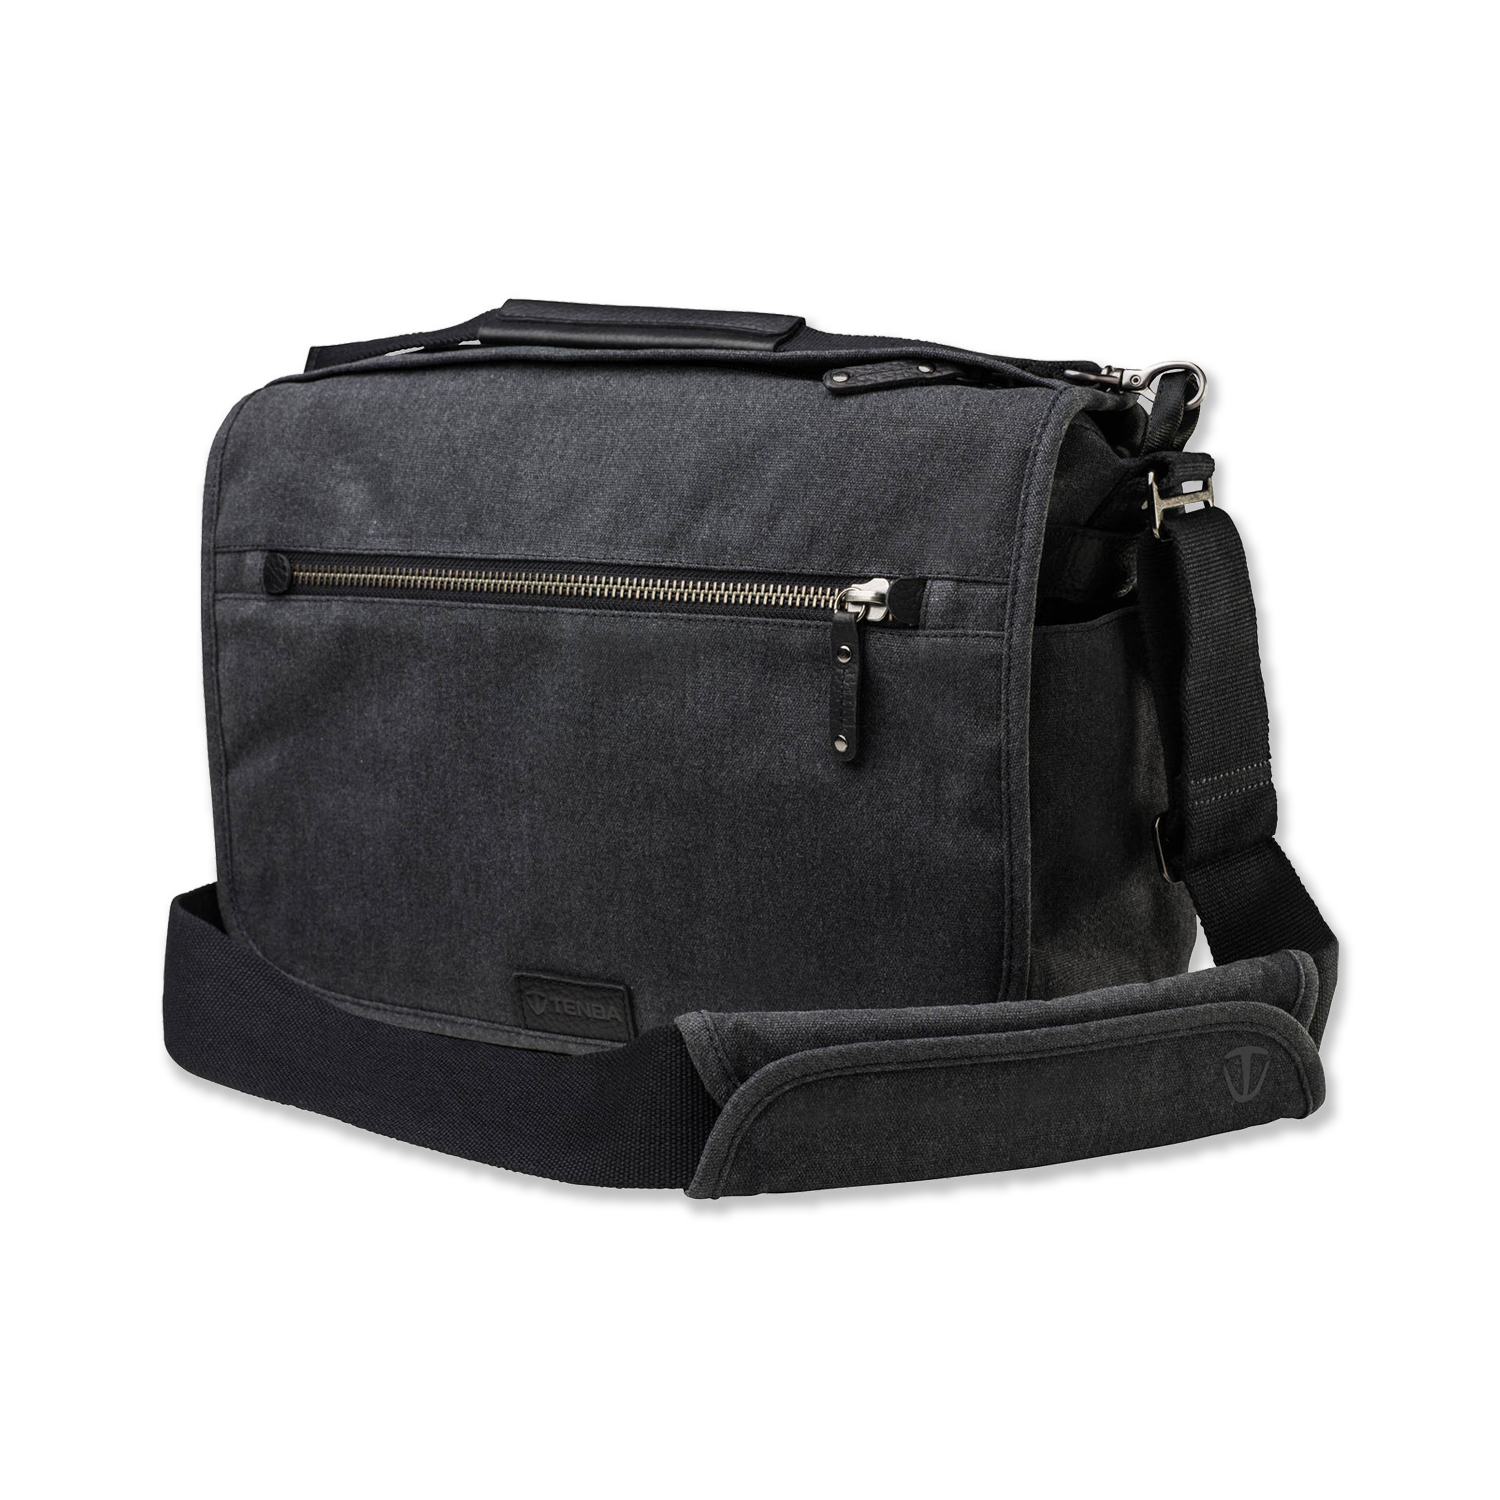 Tenba Cooper 13 DSLR -   Amazon    Minimal bag for carrying small camera setups around the city, or as an everyday bag. Extremely well-made